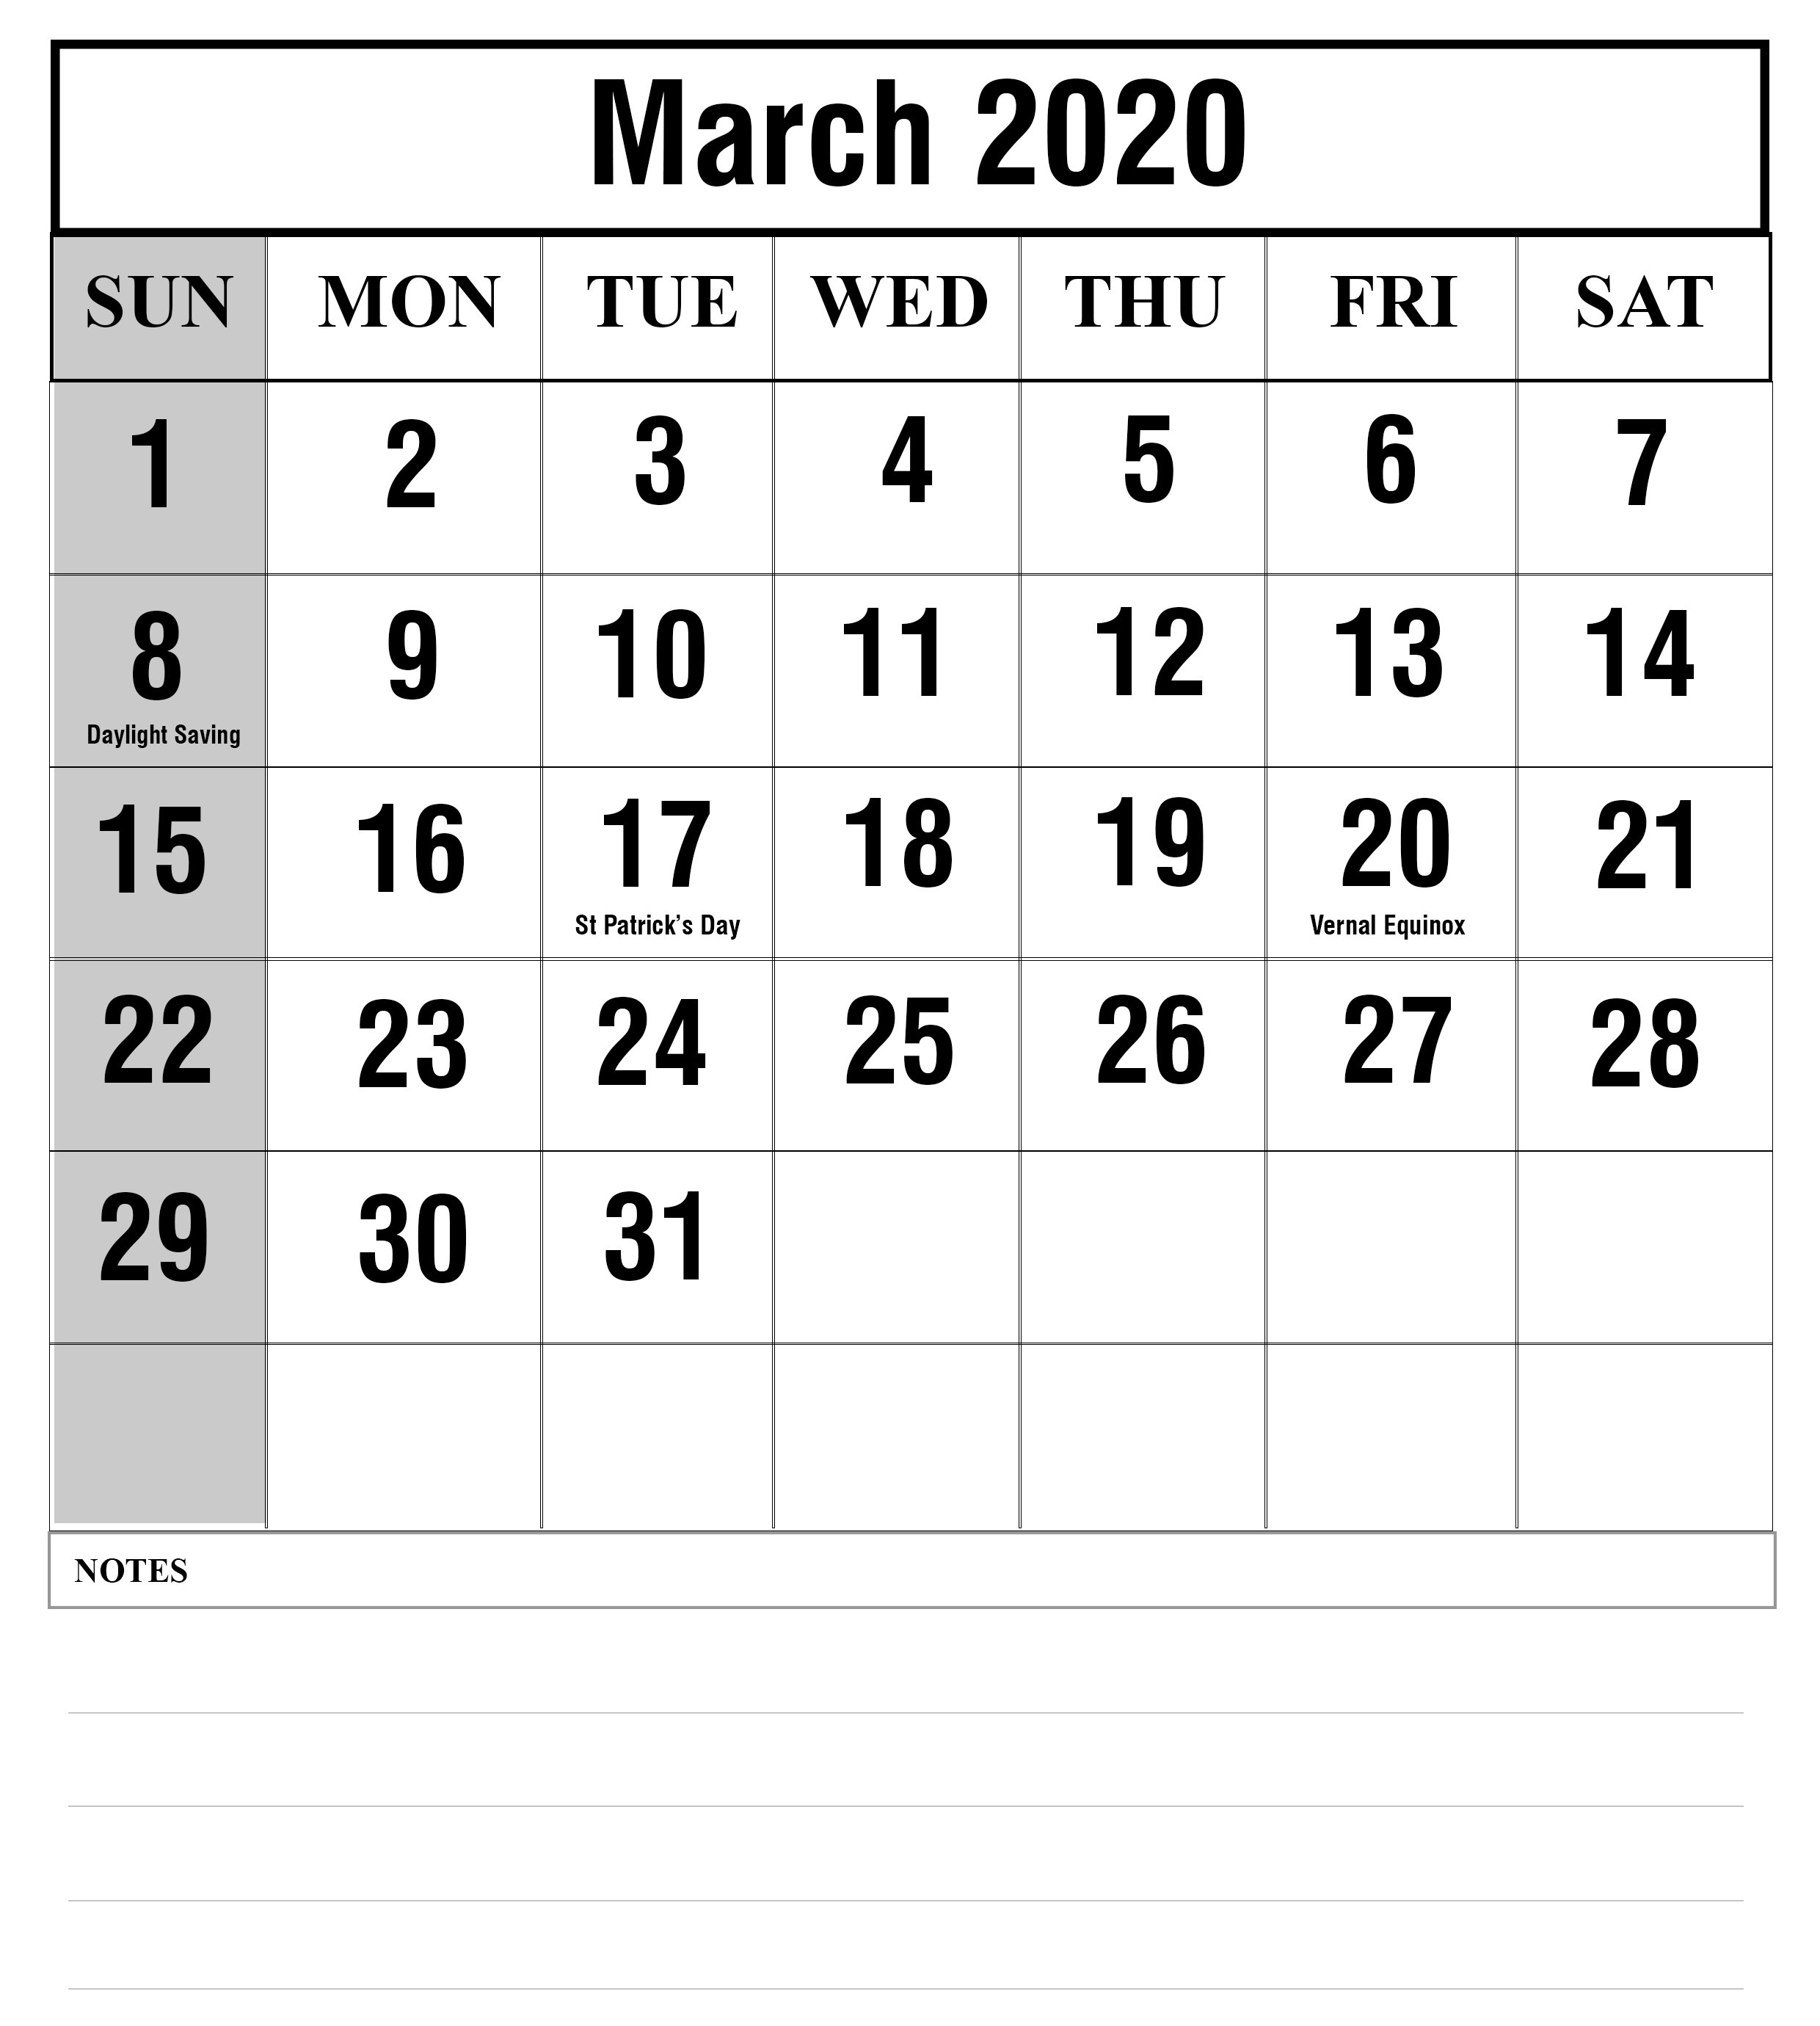 2019 Calendar 2020 Printable With Holidays - Free Printable